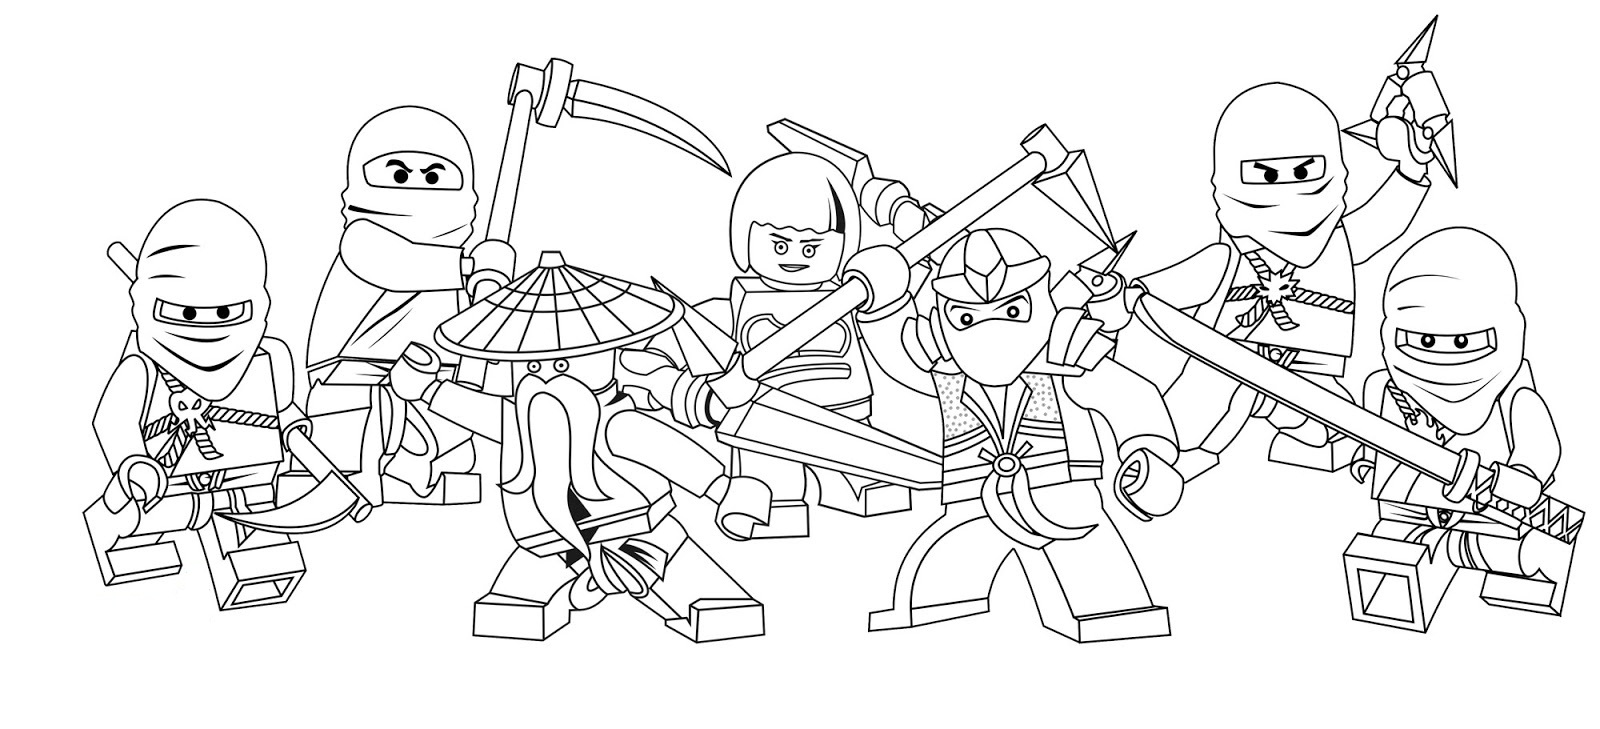 Coloring Pages Ninjago Coloring Pages Free free printable ninjago coloring pages for kids printable